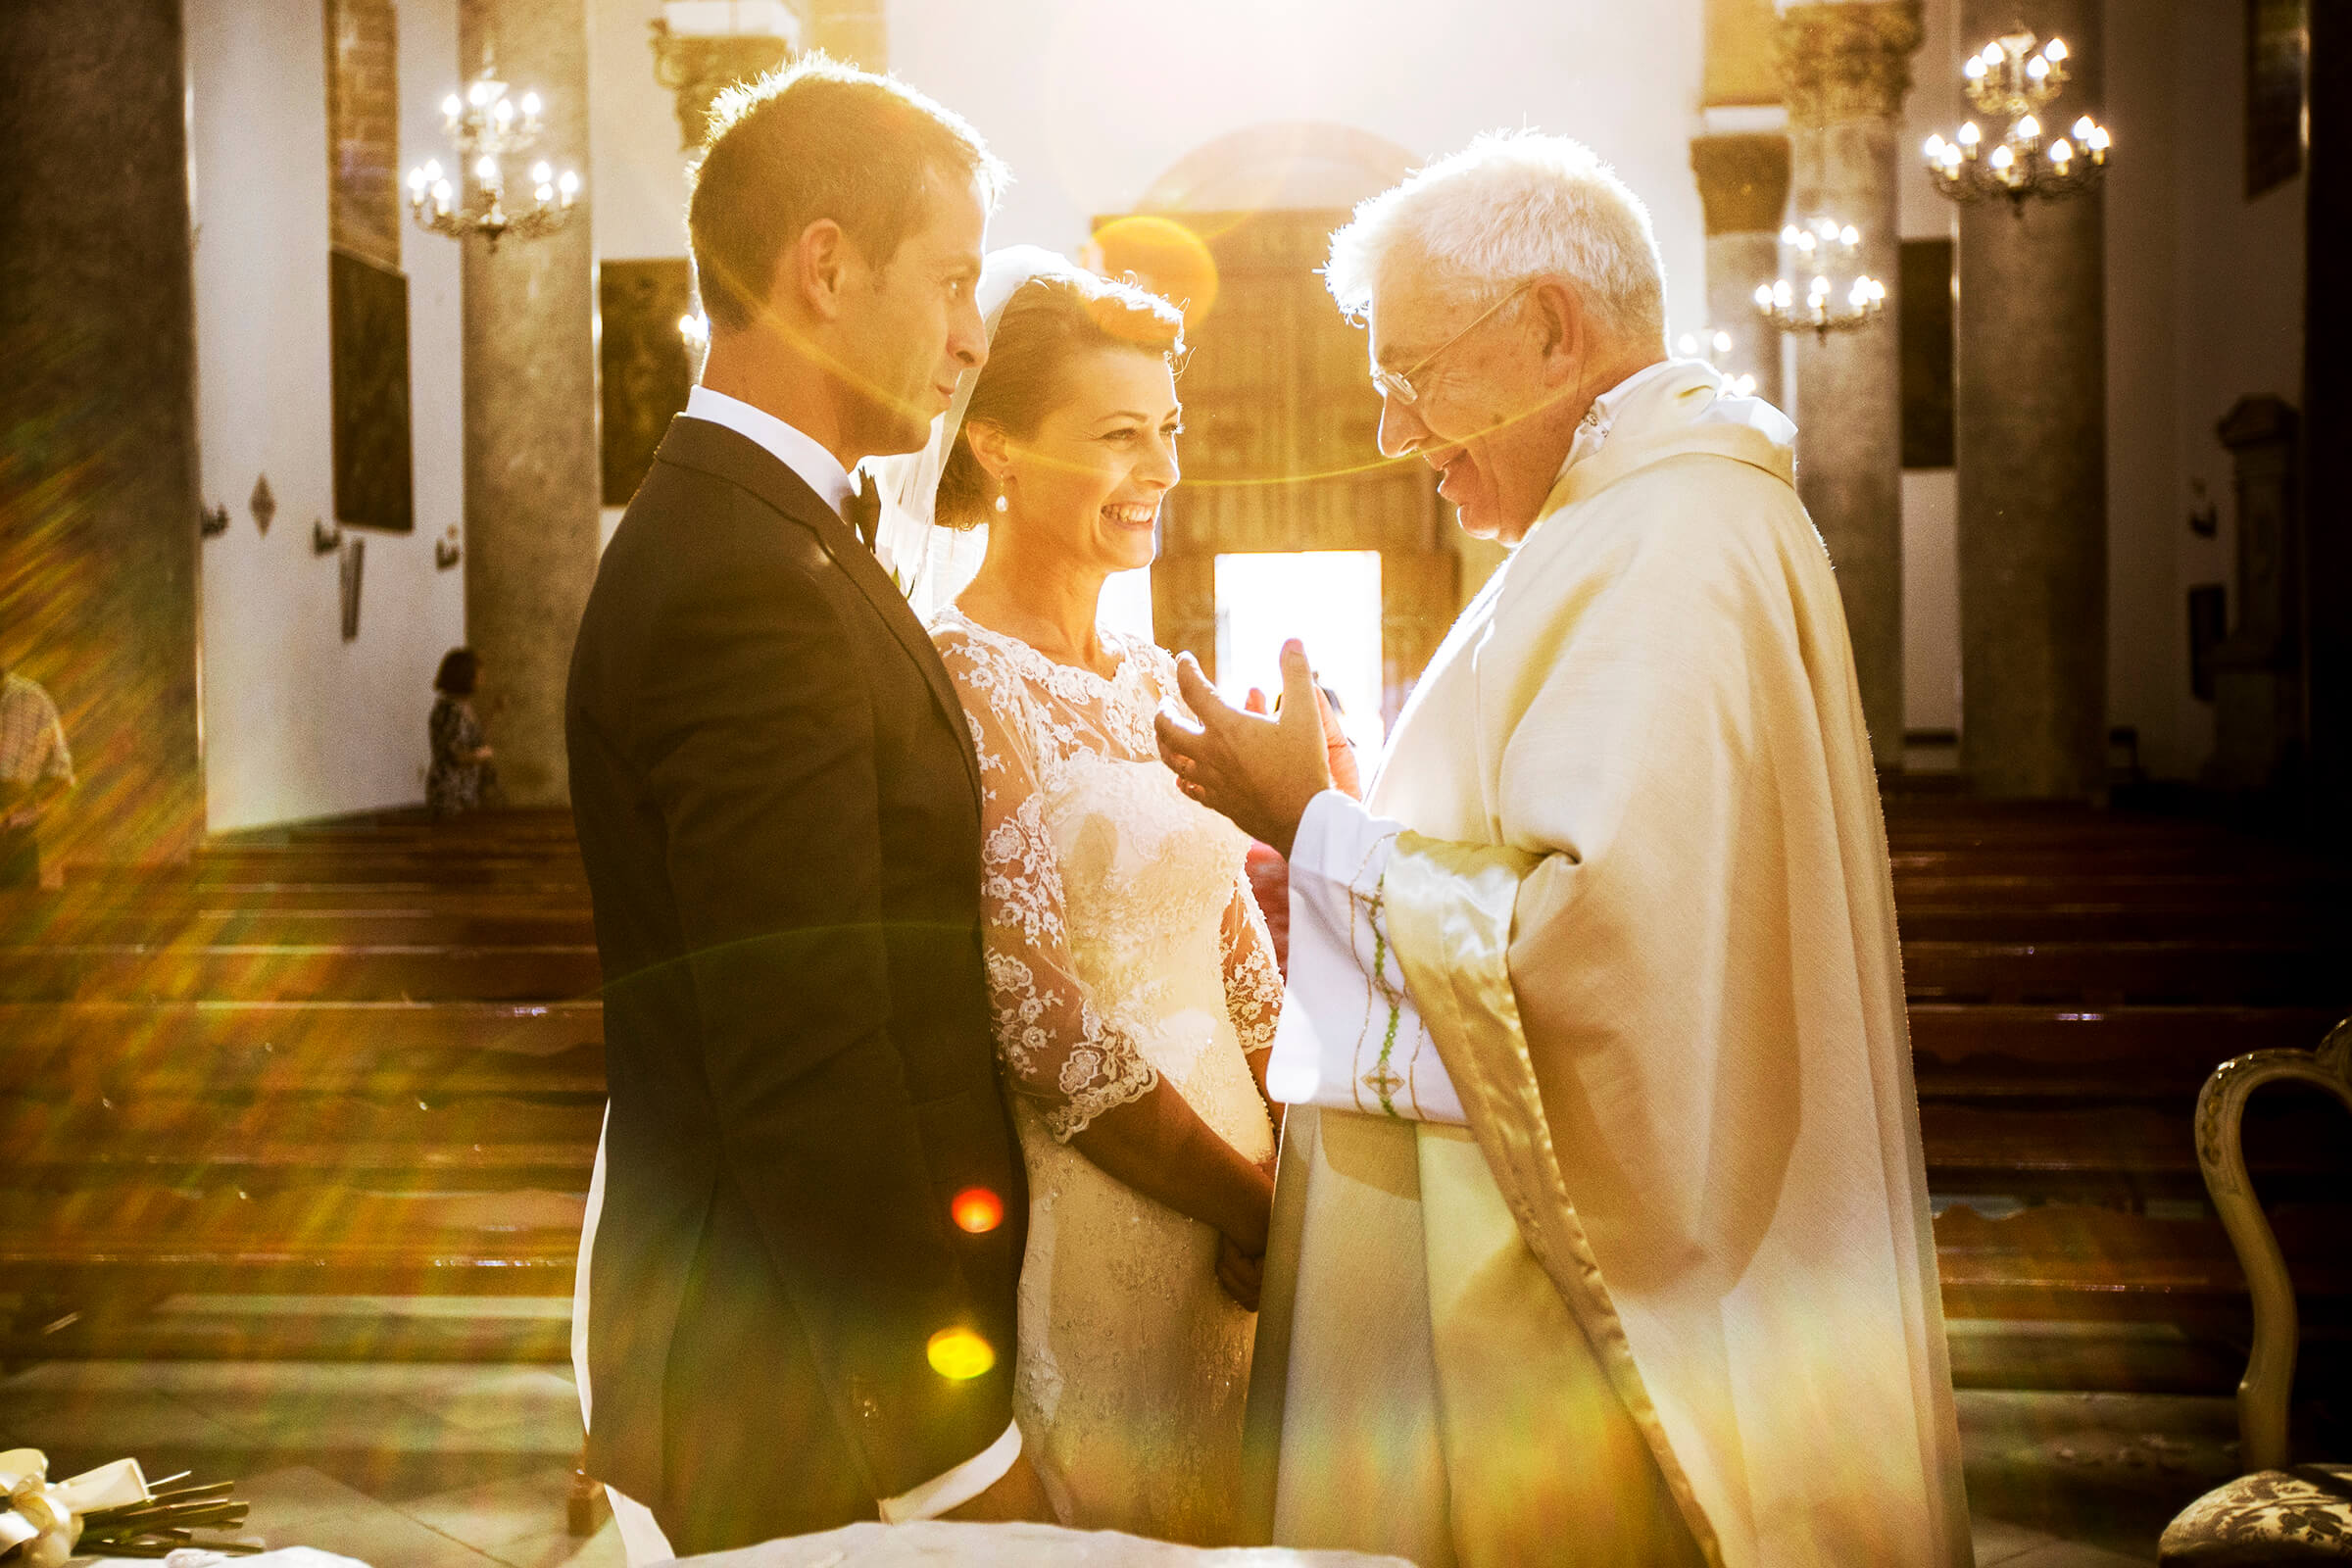 Bride and groom with priest in halo light - photo by Nino Lombardo Photographer